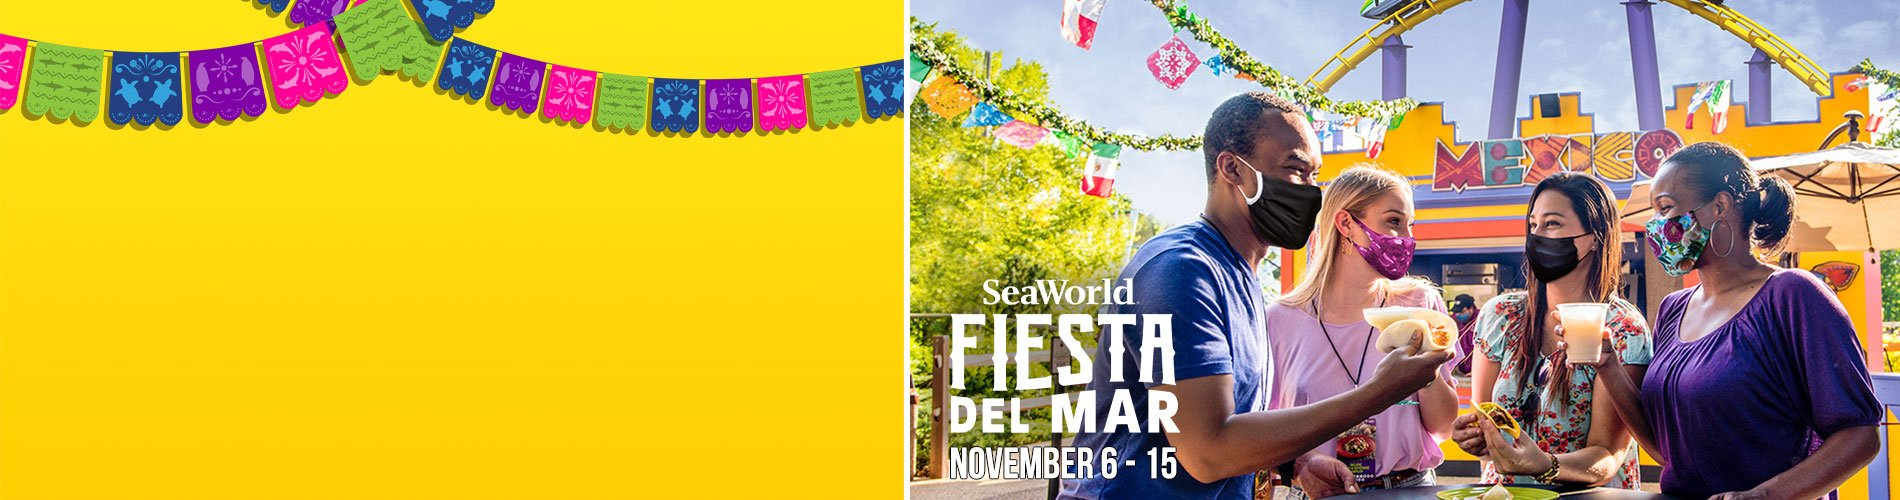 Fiesta del Mar at SeaWorld San Antonio